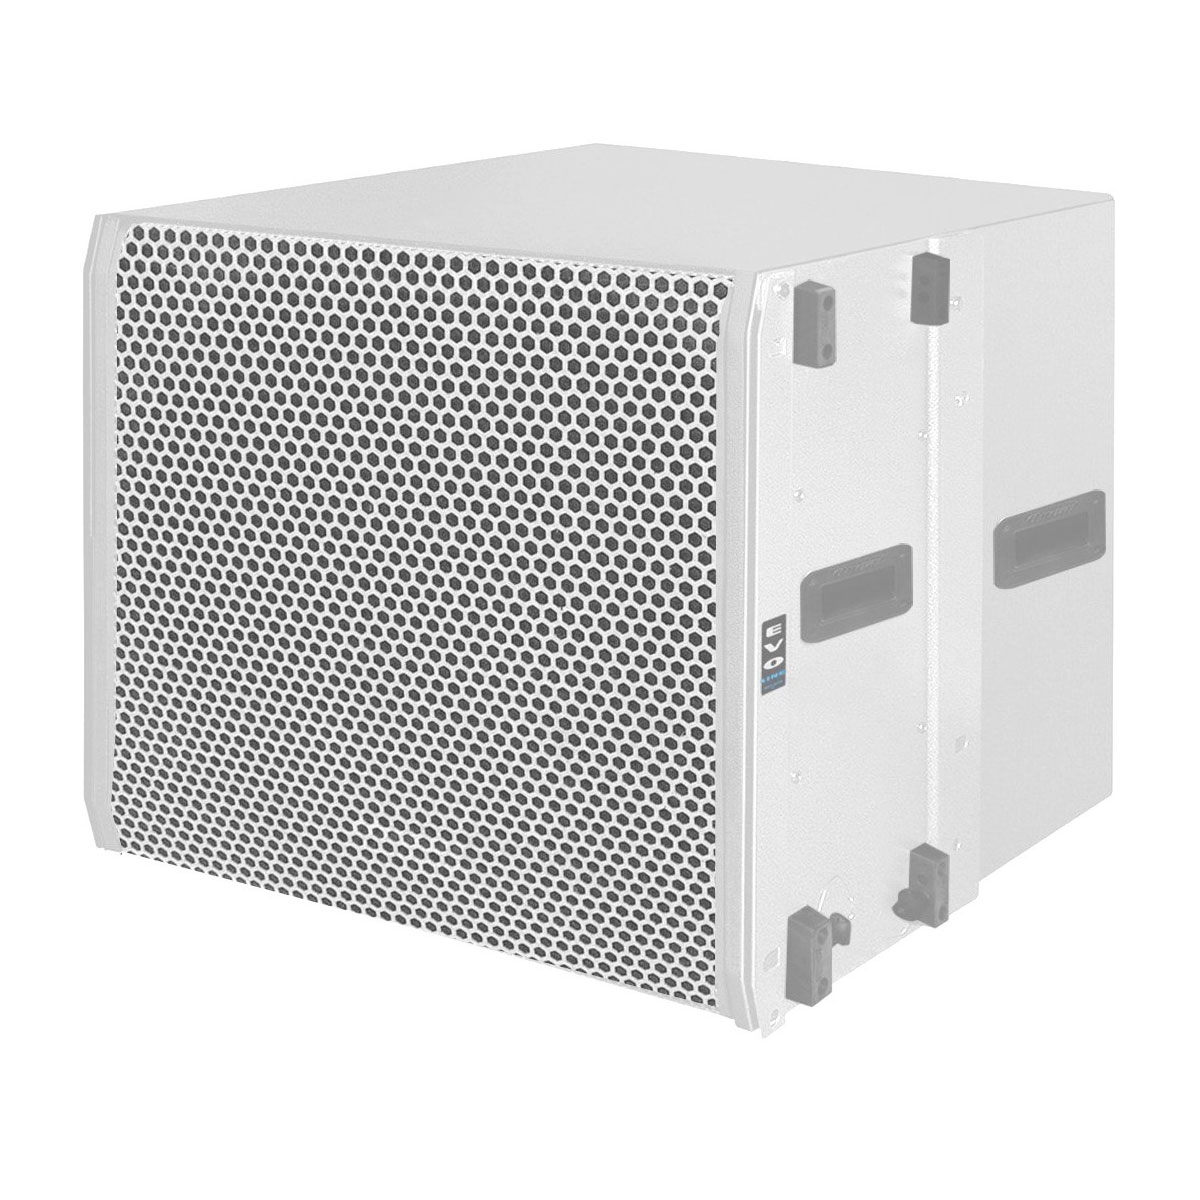 OLS1018 - Subwoofer Ativo Line Array 600W OLS 1018 Branco - Oneal